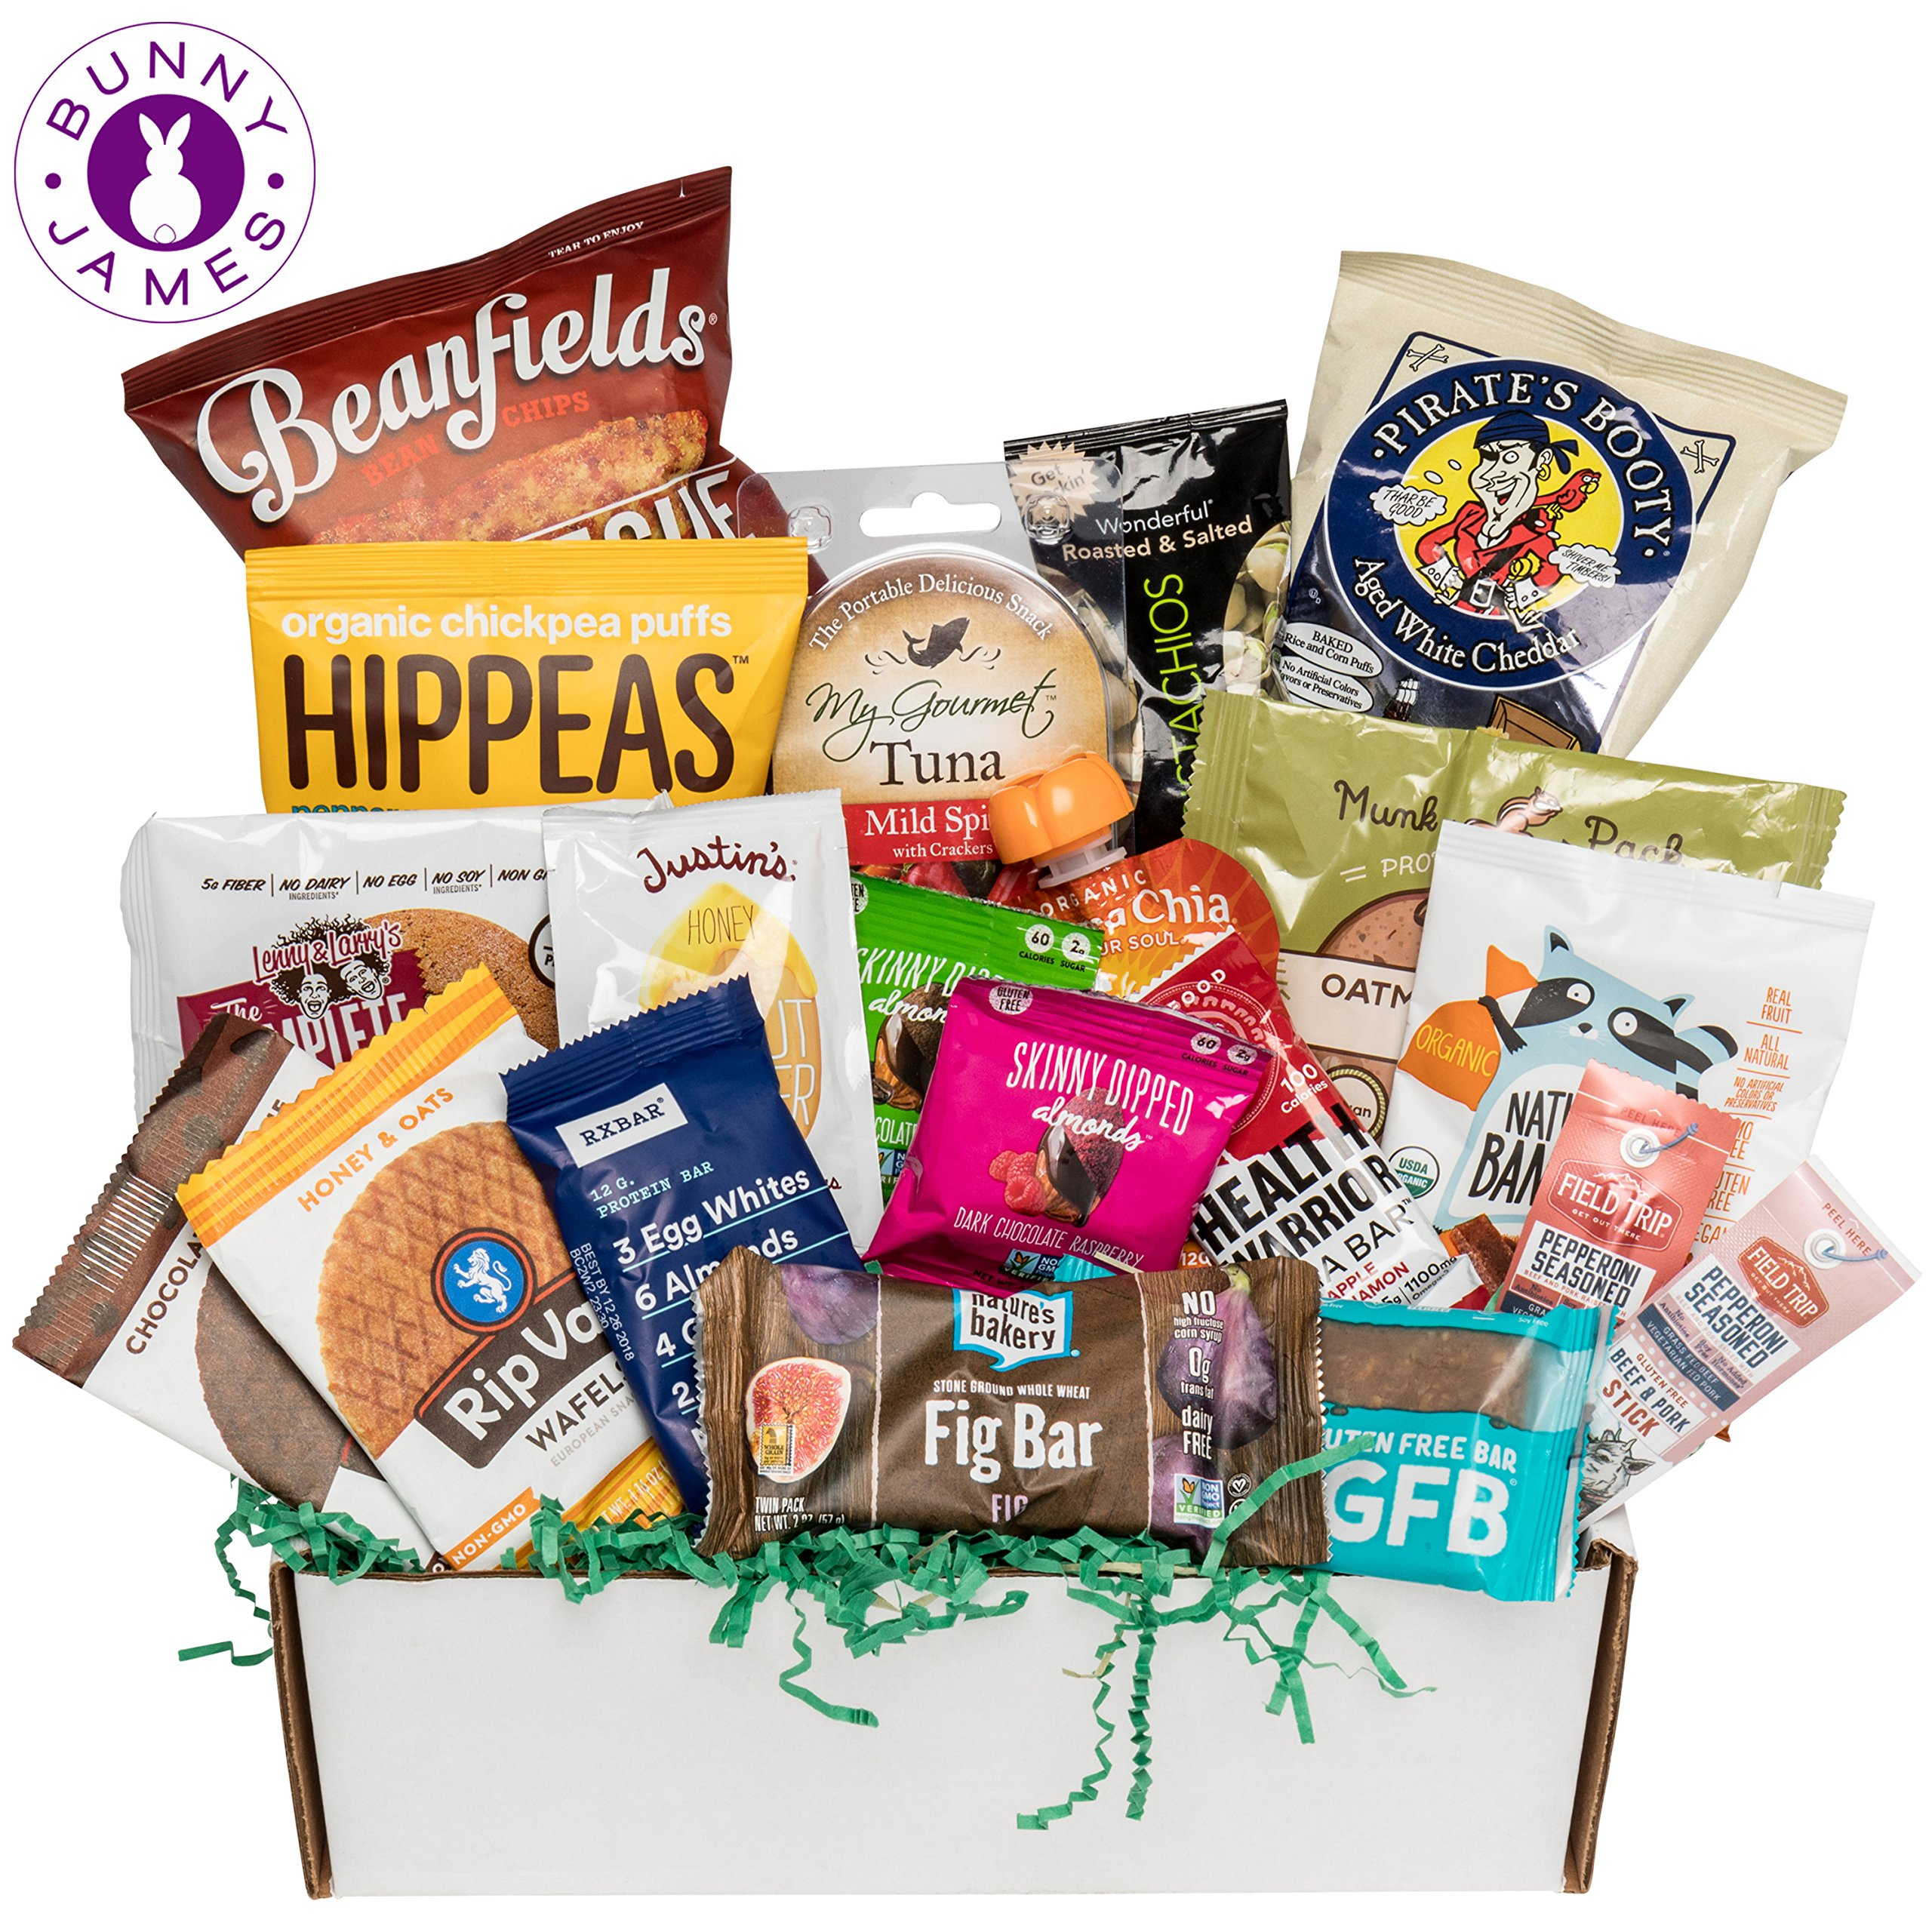 Healthy Sweet & Savory Snacks Sampler Box: Variety Mix of Premium Natural, Organic, Gourmet Food Snacks – College Care Package, Thank You, Get Well Gift Box by BUNNY · JAMES ·